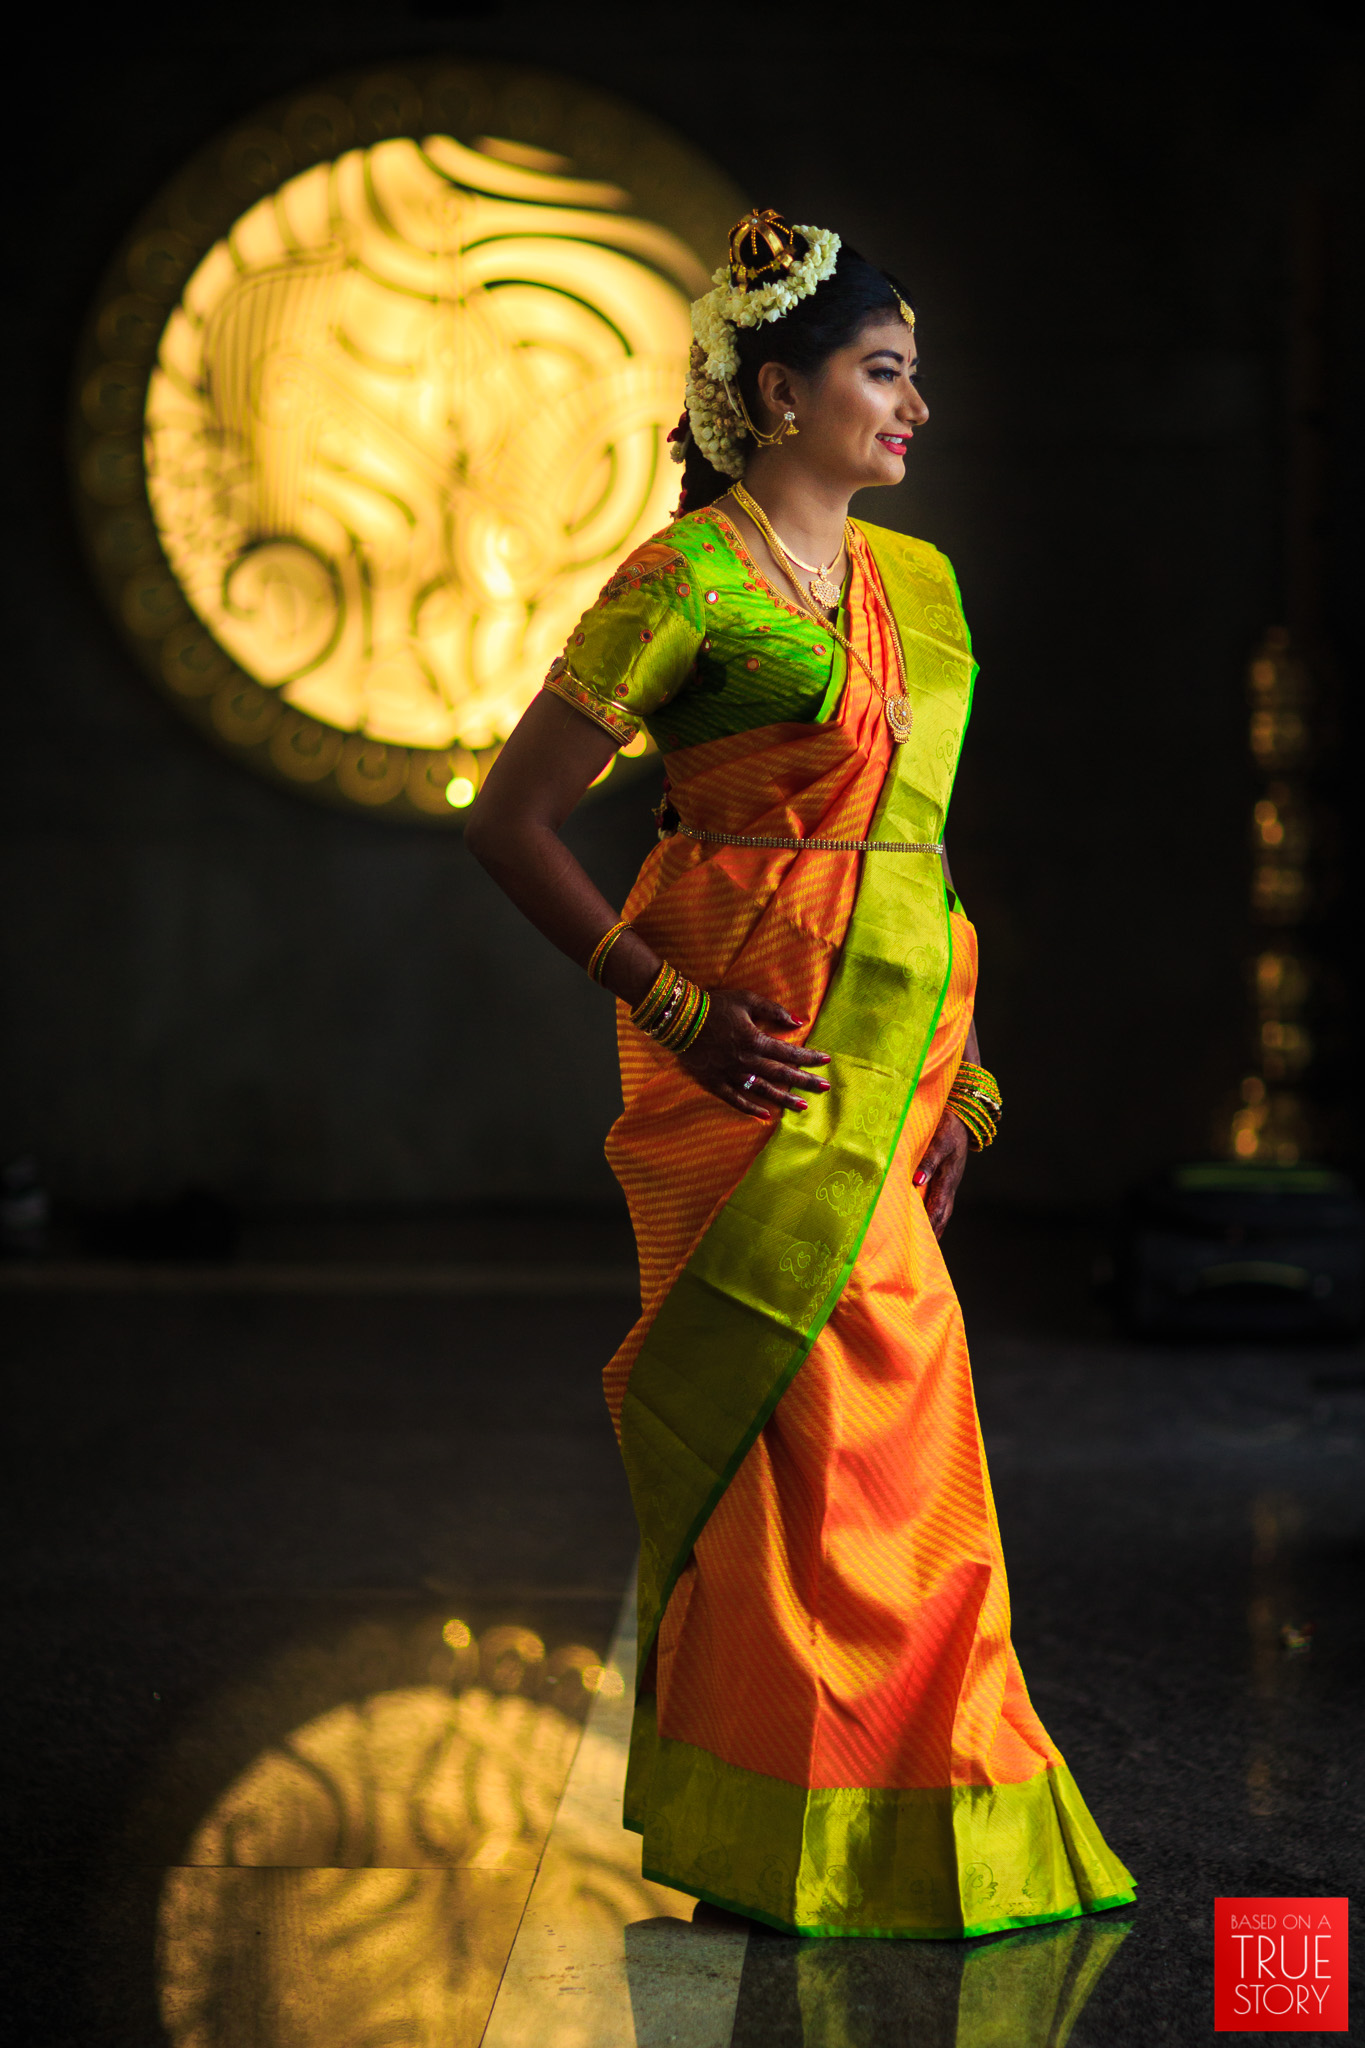 Tambrahm-Candid-Wedding-Photographers-Bangalore-0042.jpg